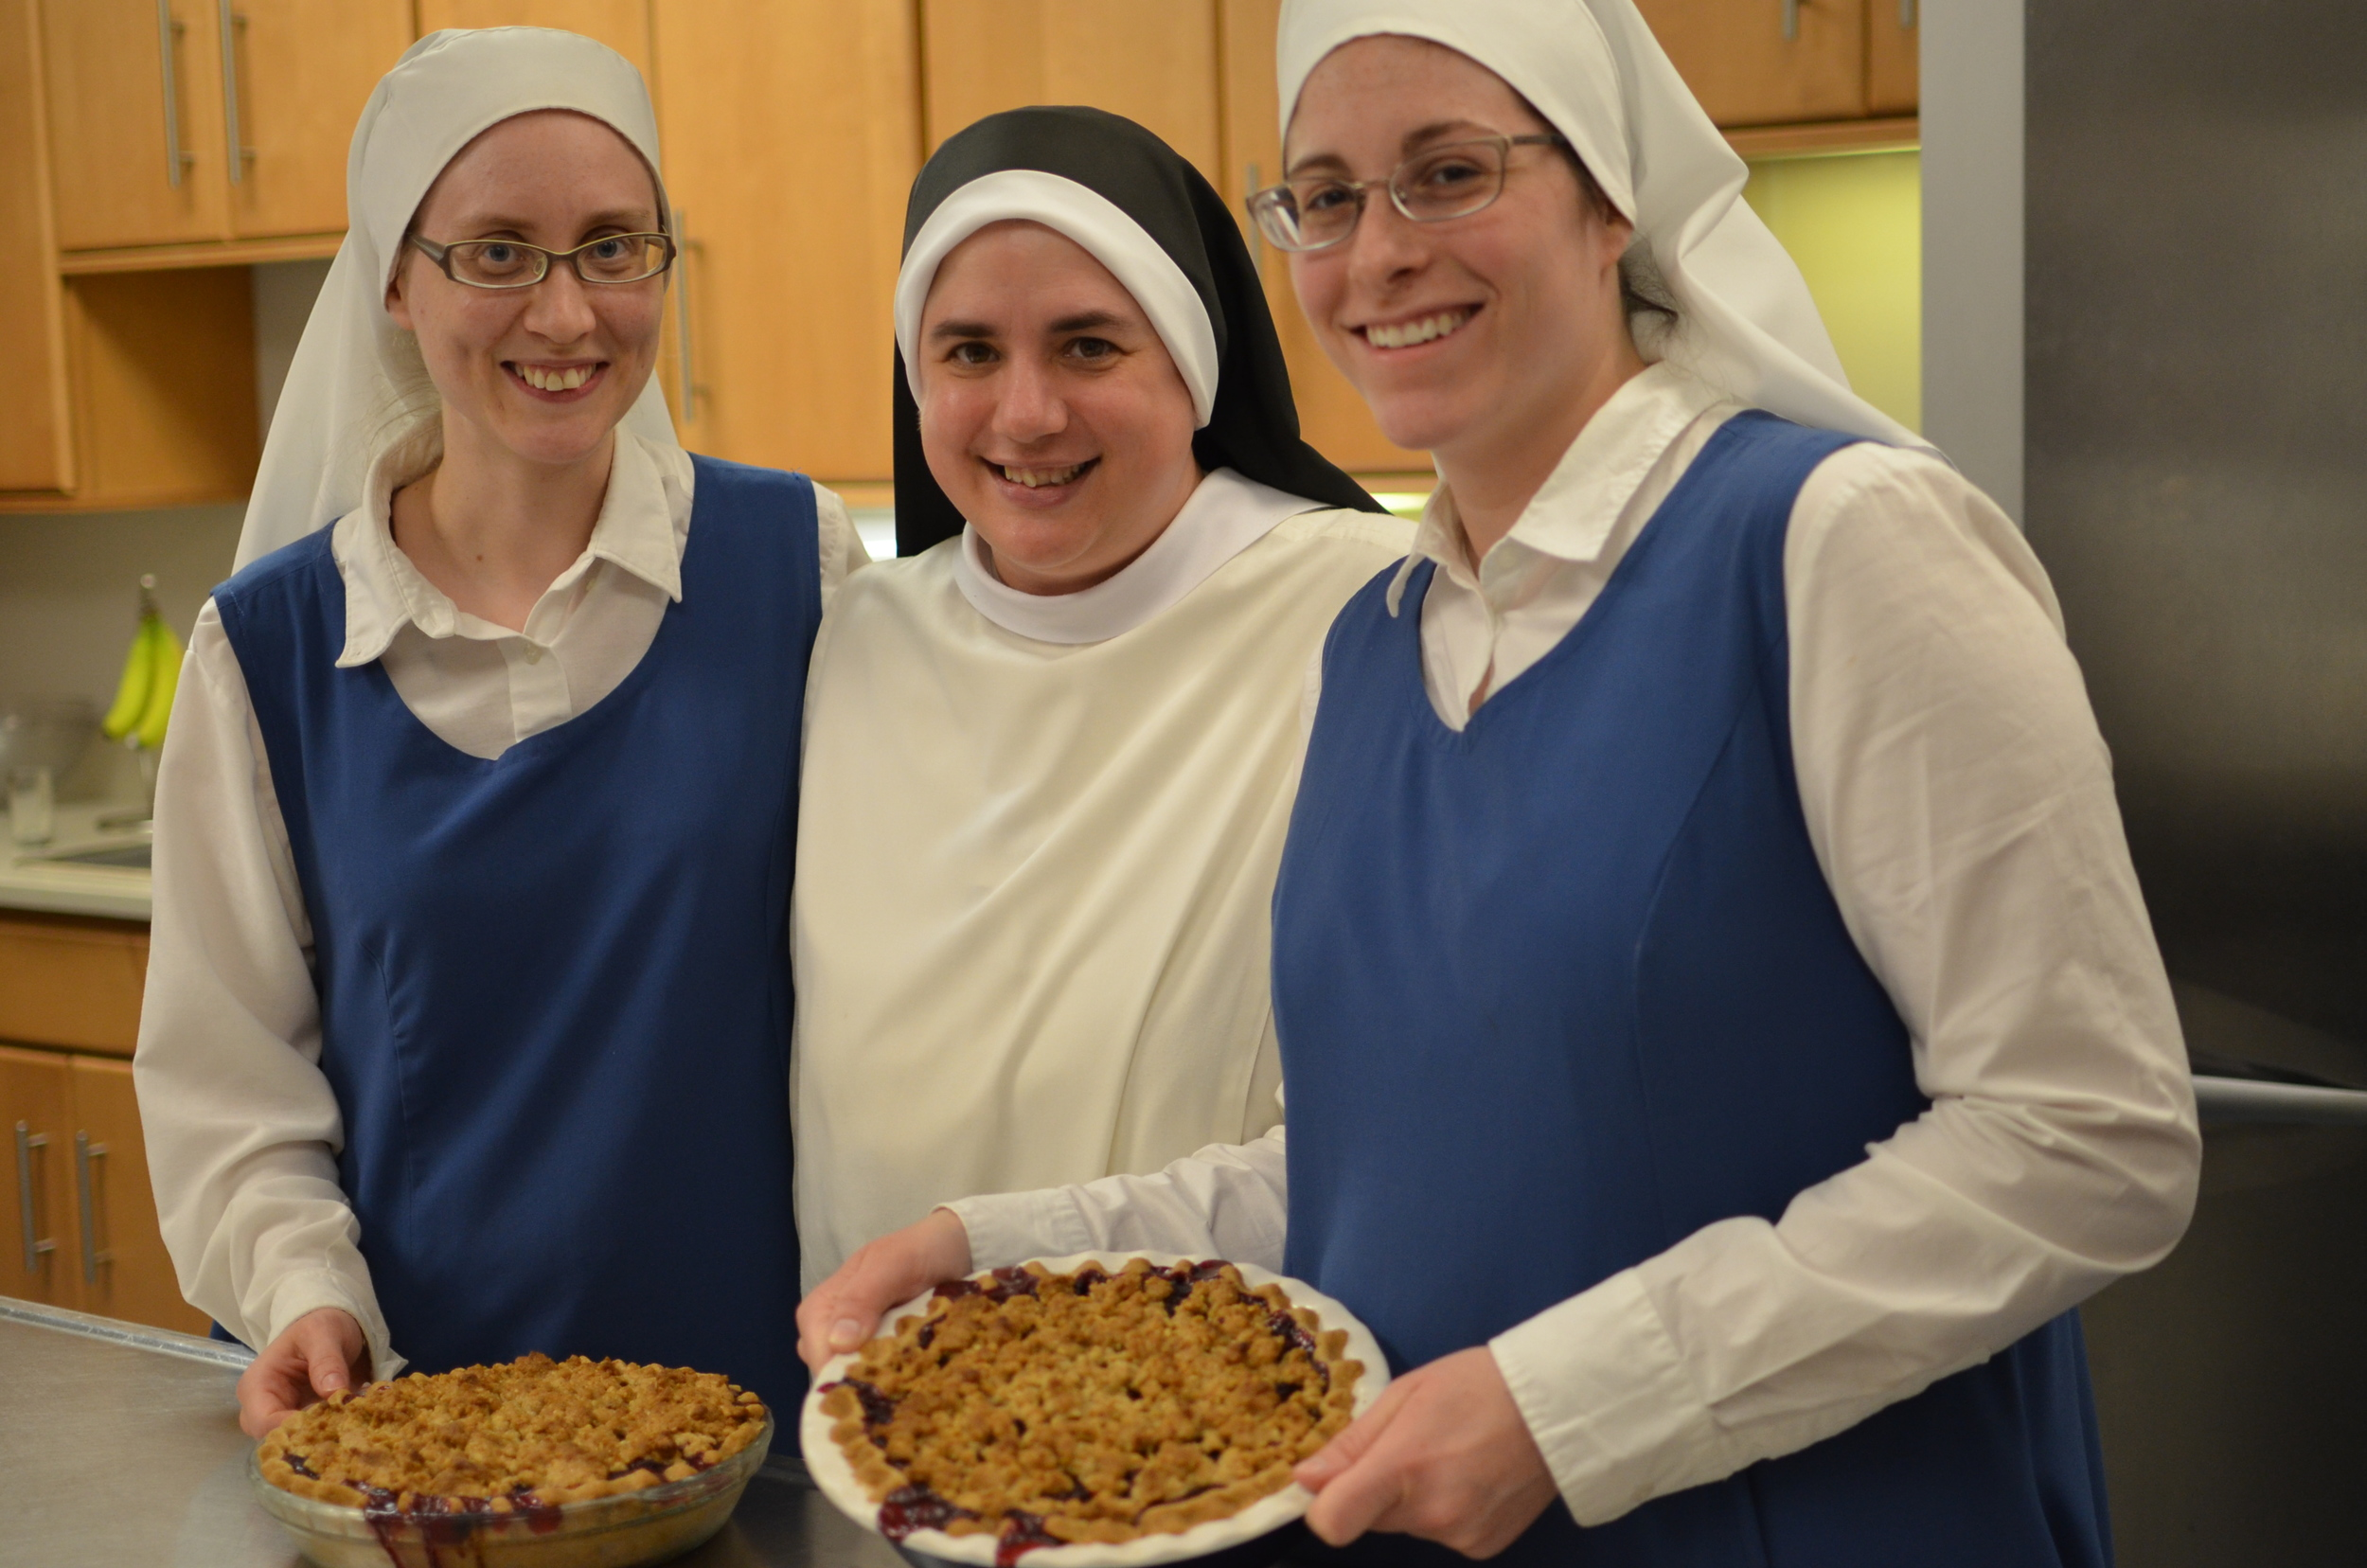 The sisters show off their fresh out of the oven Cherry Crumble Pies! Good job, Sisters!